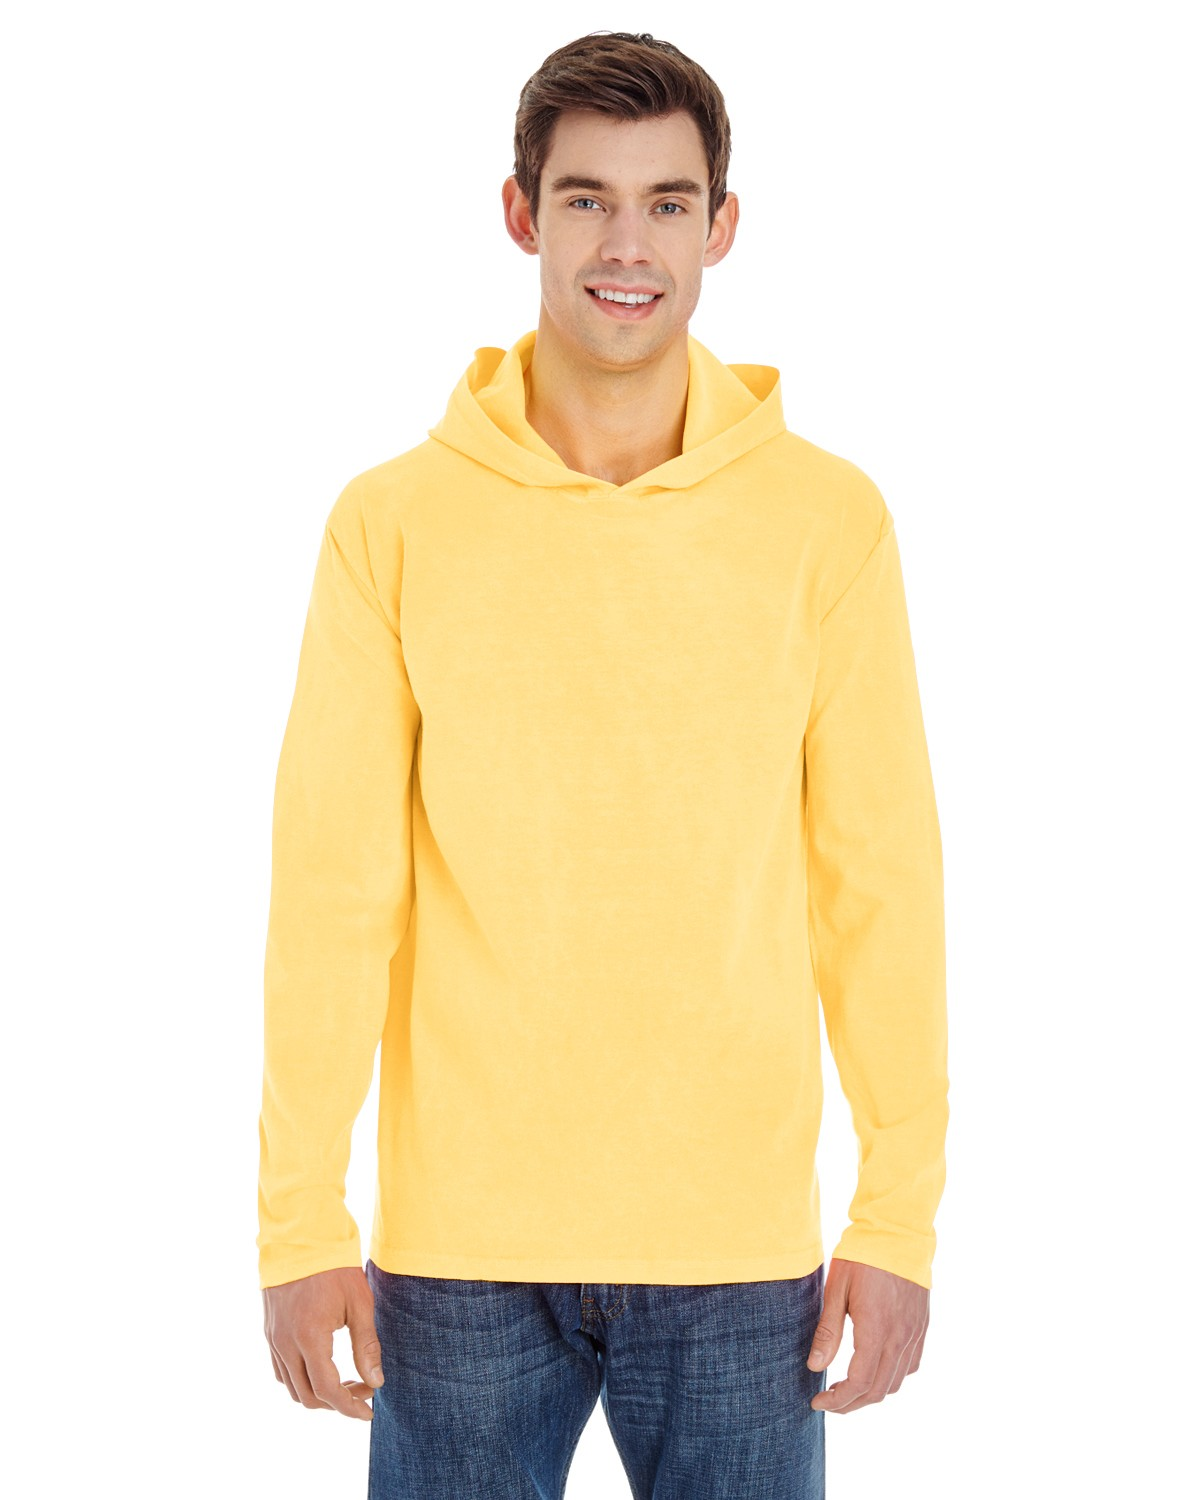 4900 Comfort Colors BUTTER